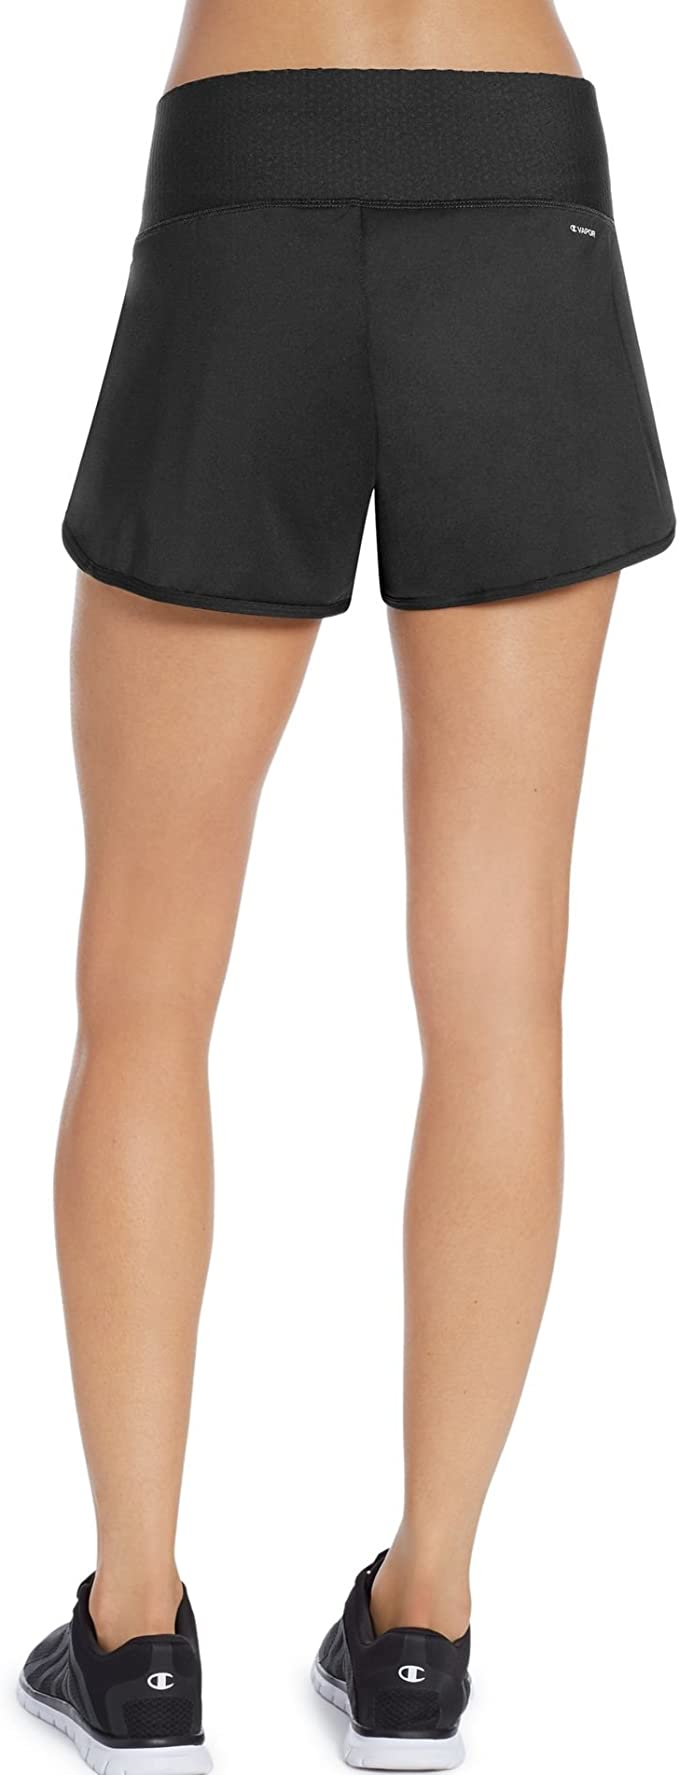 Champion Absolute Fusion Shorts SmoothTec Waistband Womens 7 inch Black sz XS-XL